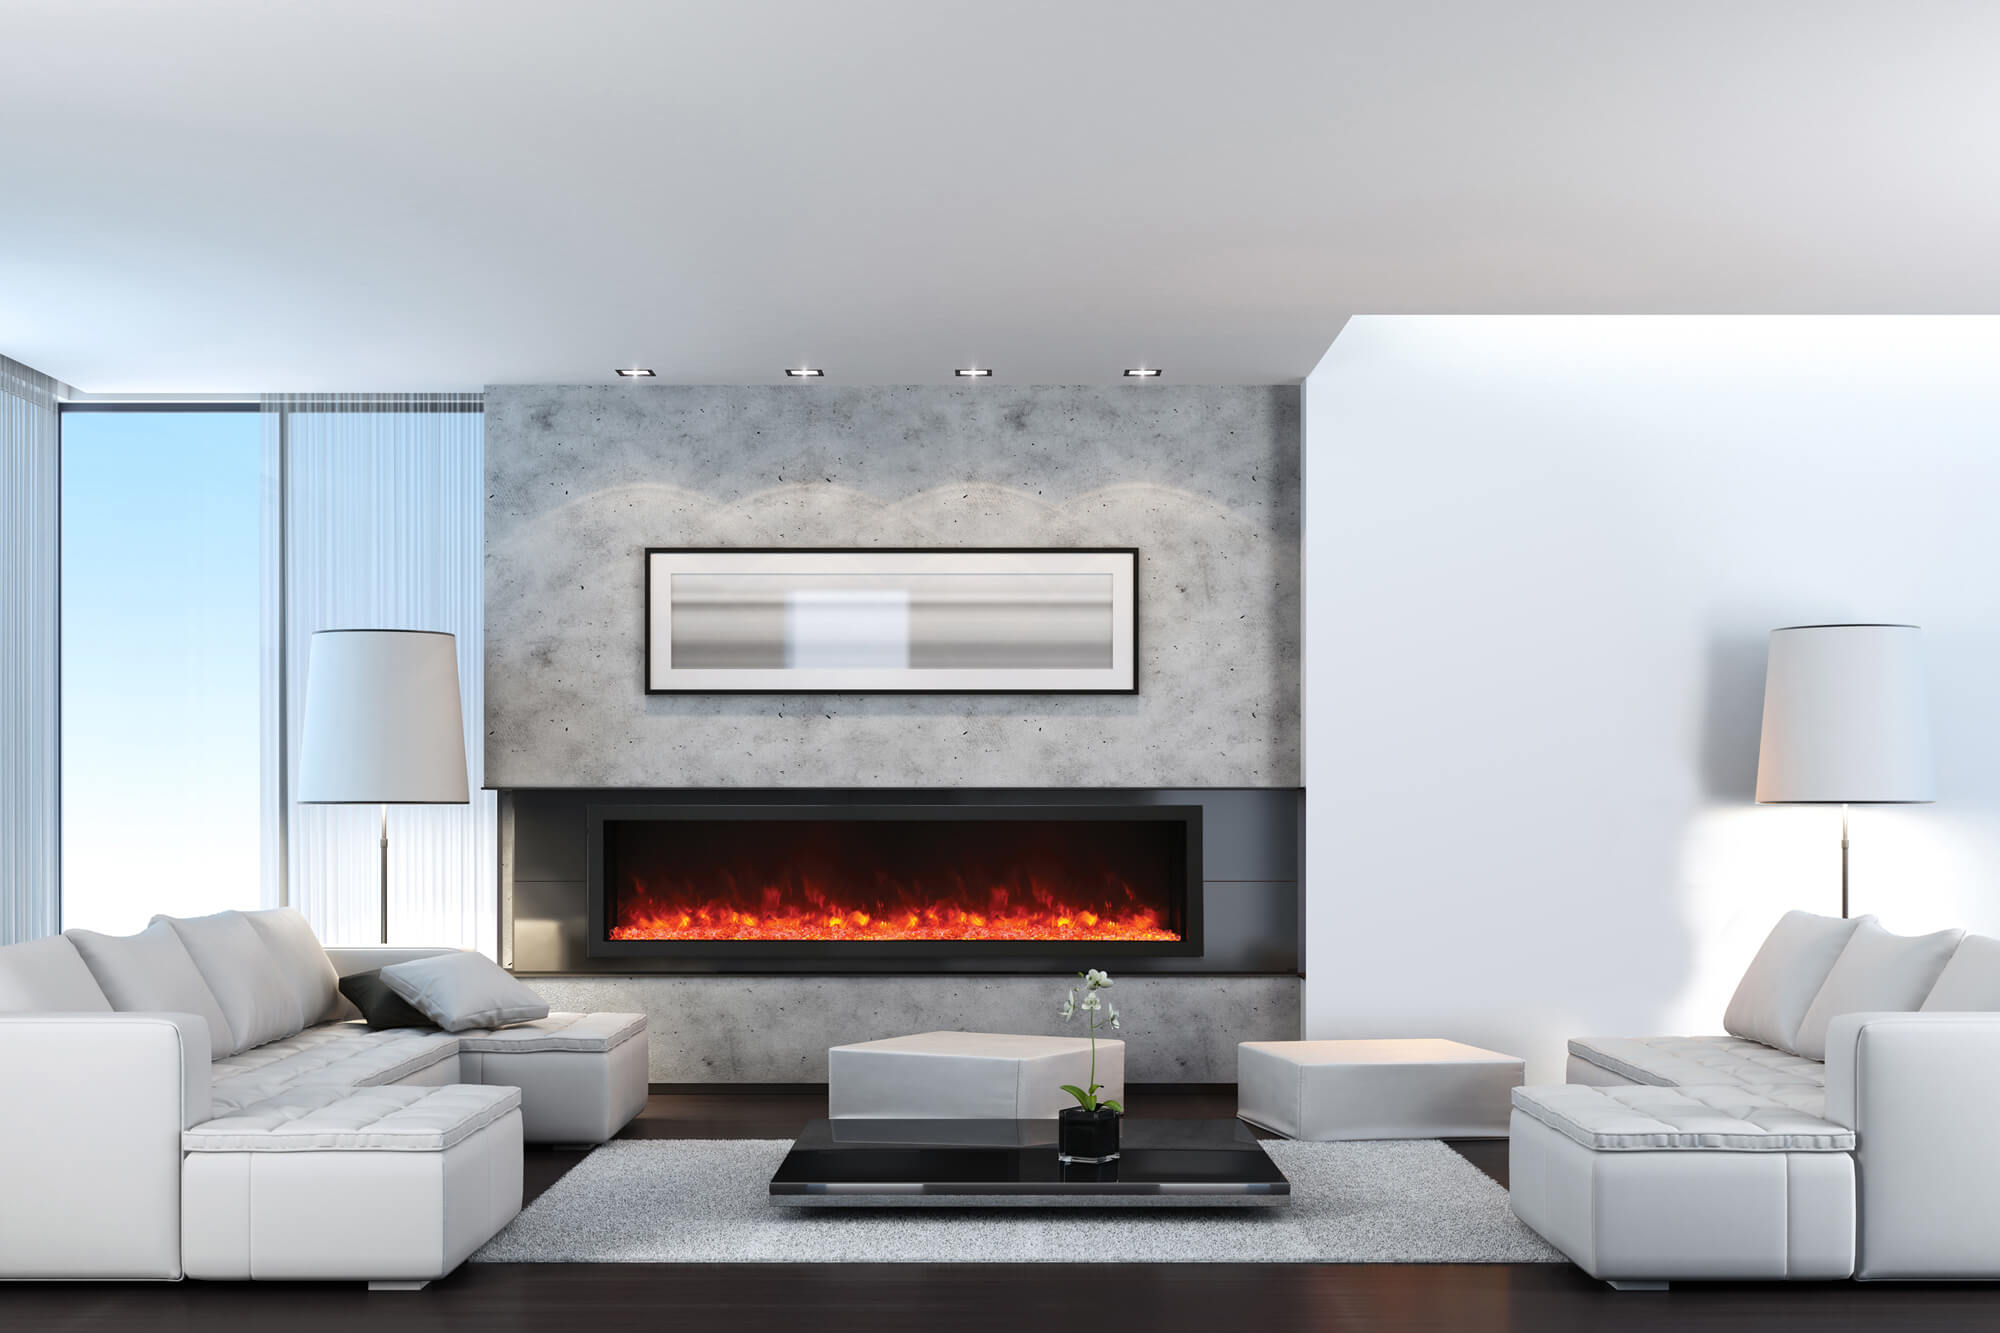 long stylish indoor electric fireplace set into wall